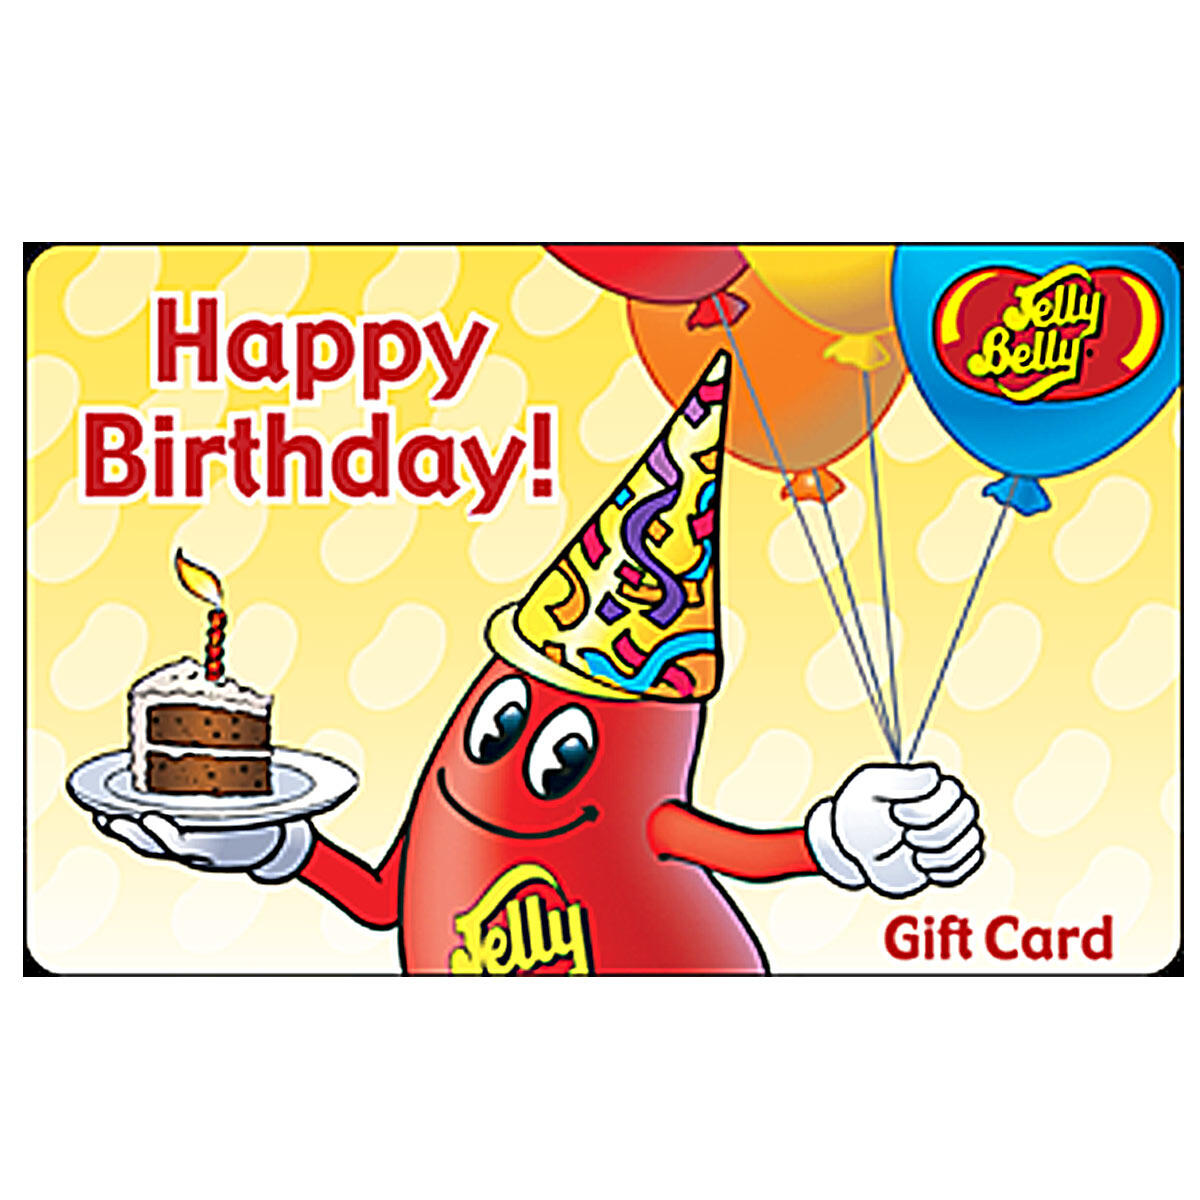 Jelly Belly Gift Card